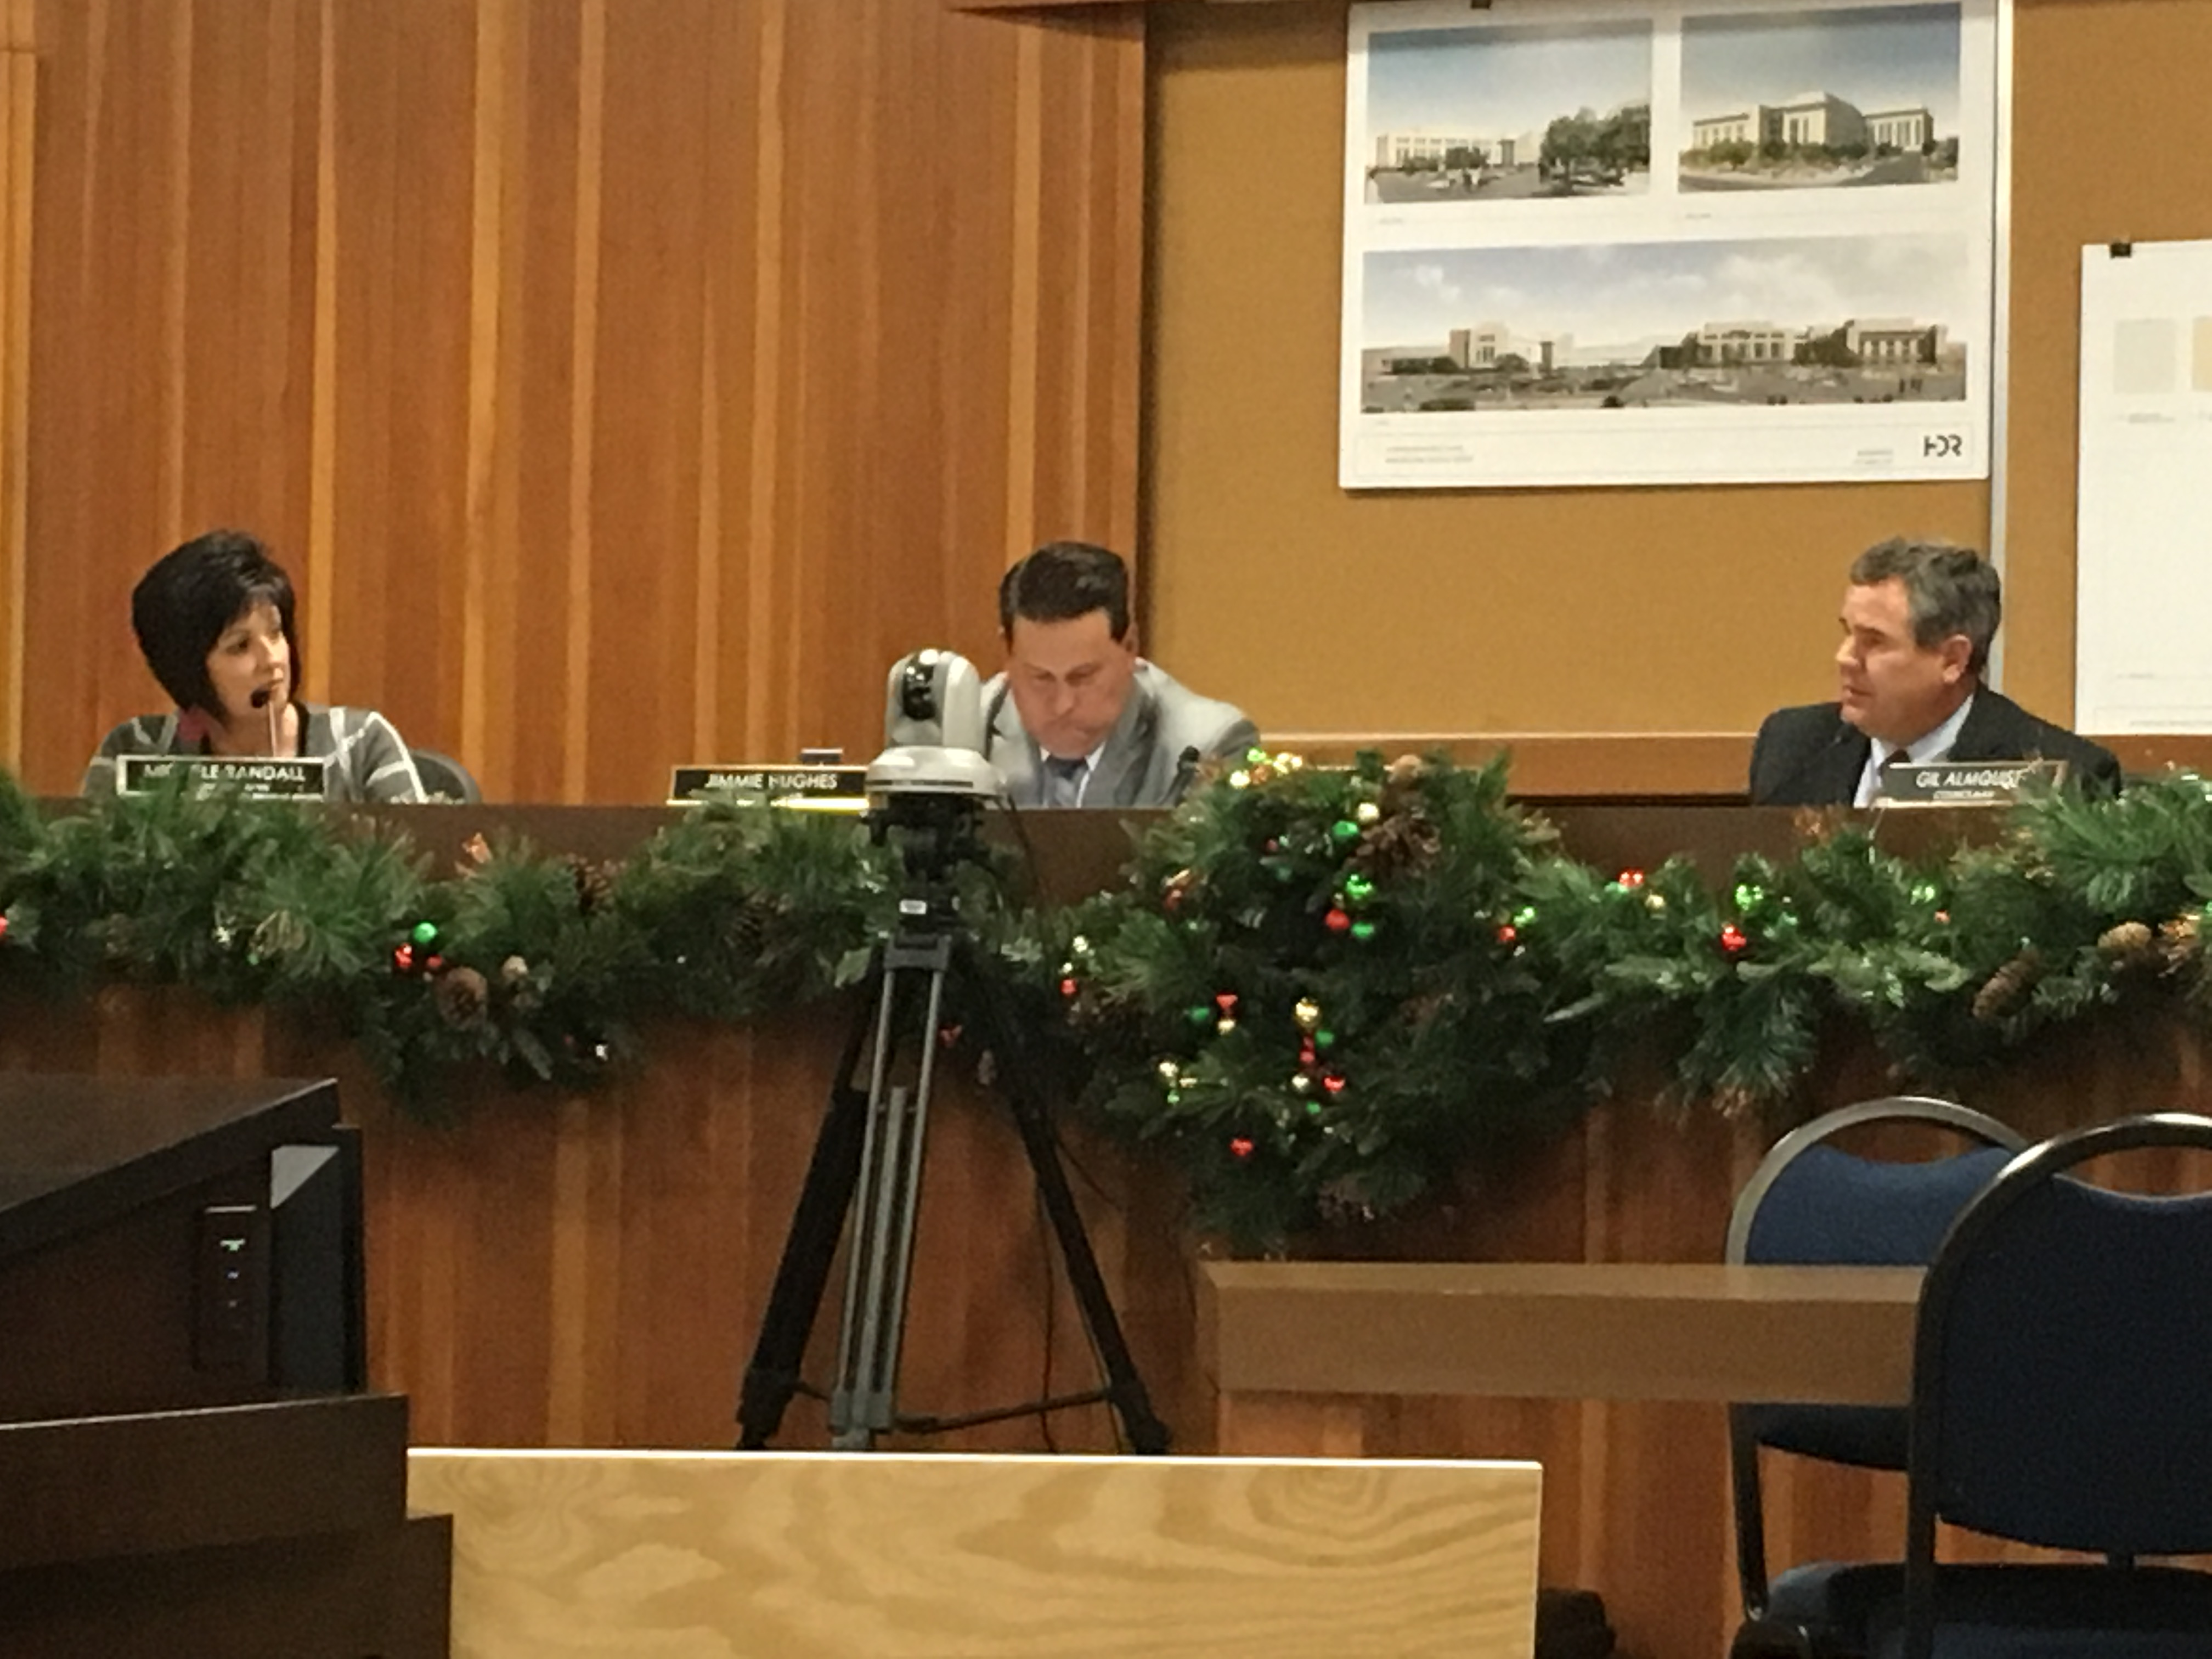 St. George City Council. Council chambers, St. George, Utah, Dec. 3, 2015 | Photo by Tracie Sullivan, St. George News